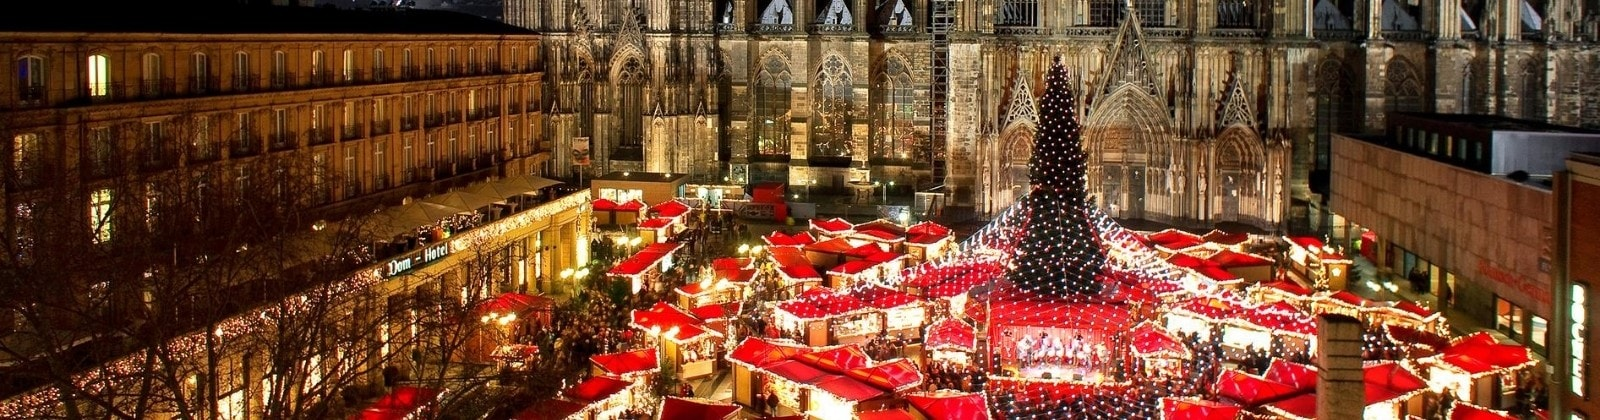 Places Open On Christmas Day 2020 22 Best Places to Spend Christmas in Europe for a Perfect Winter